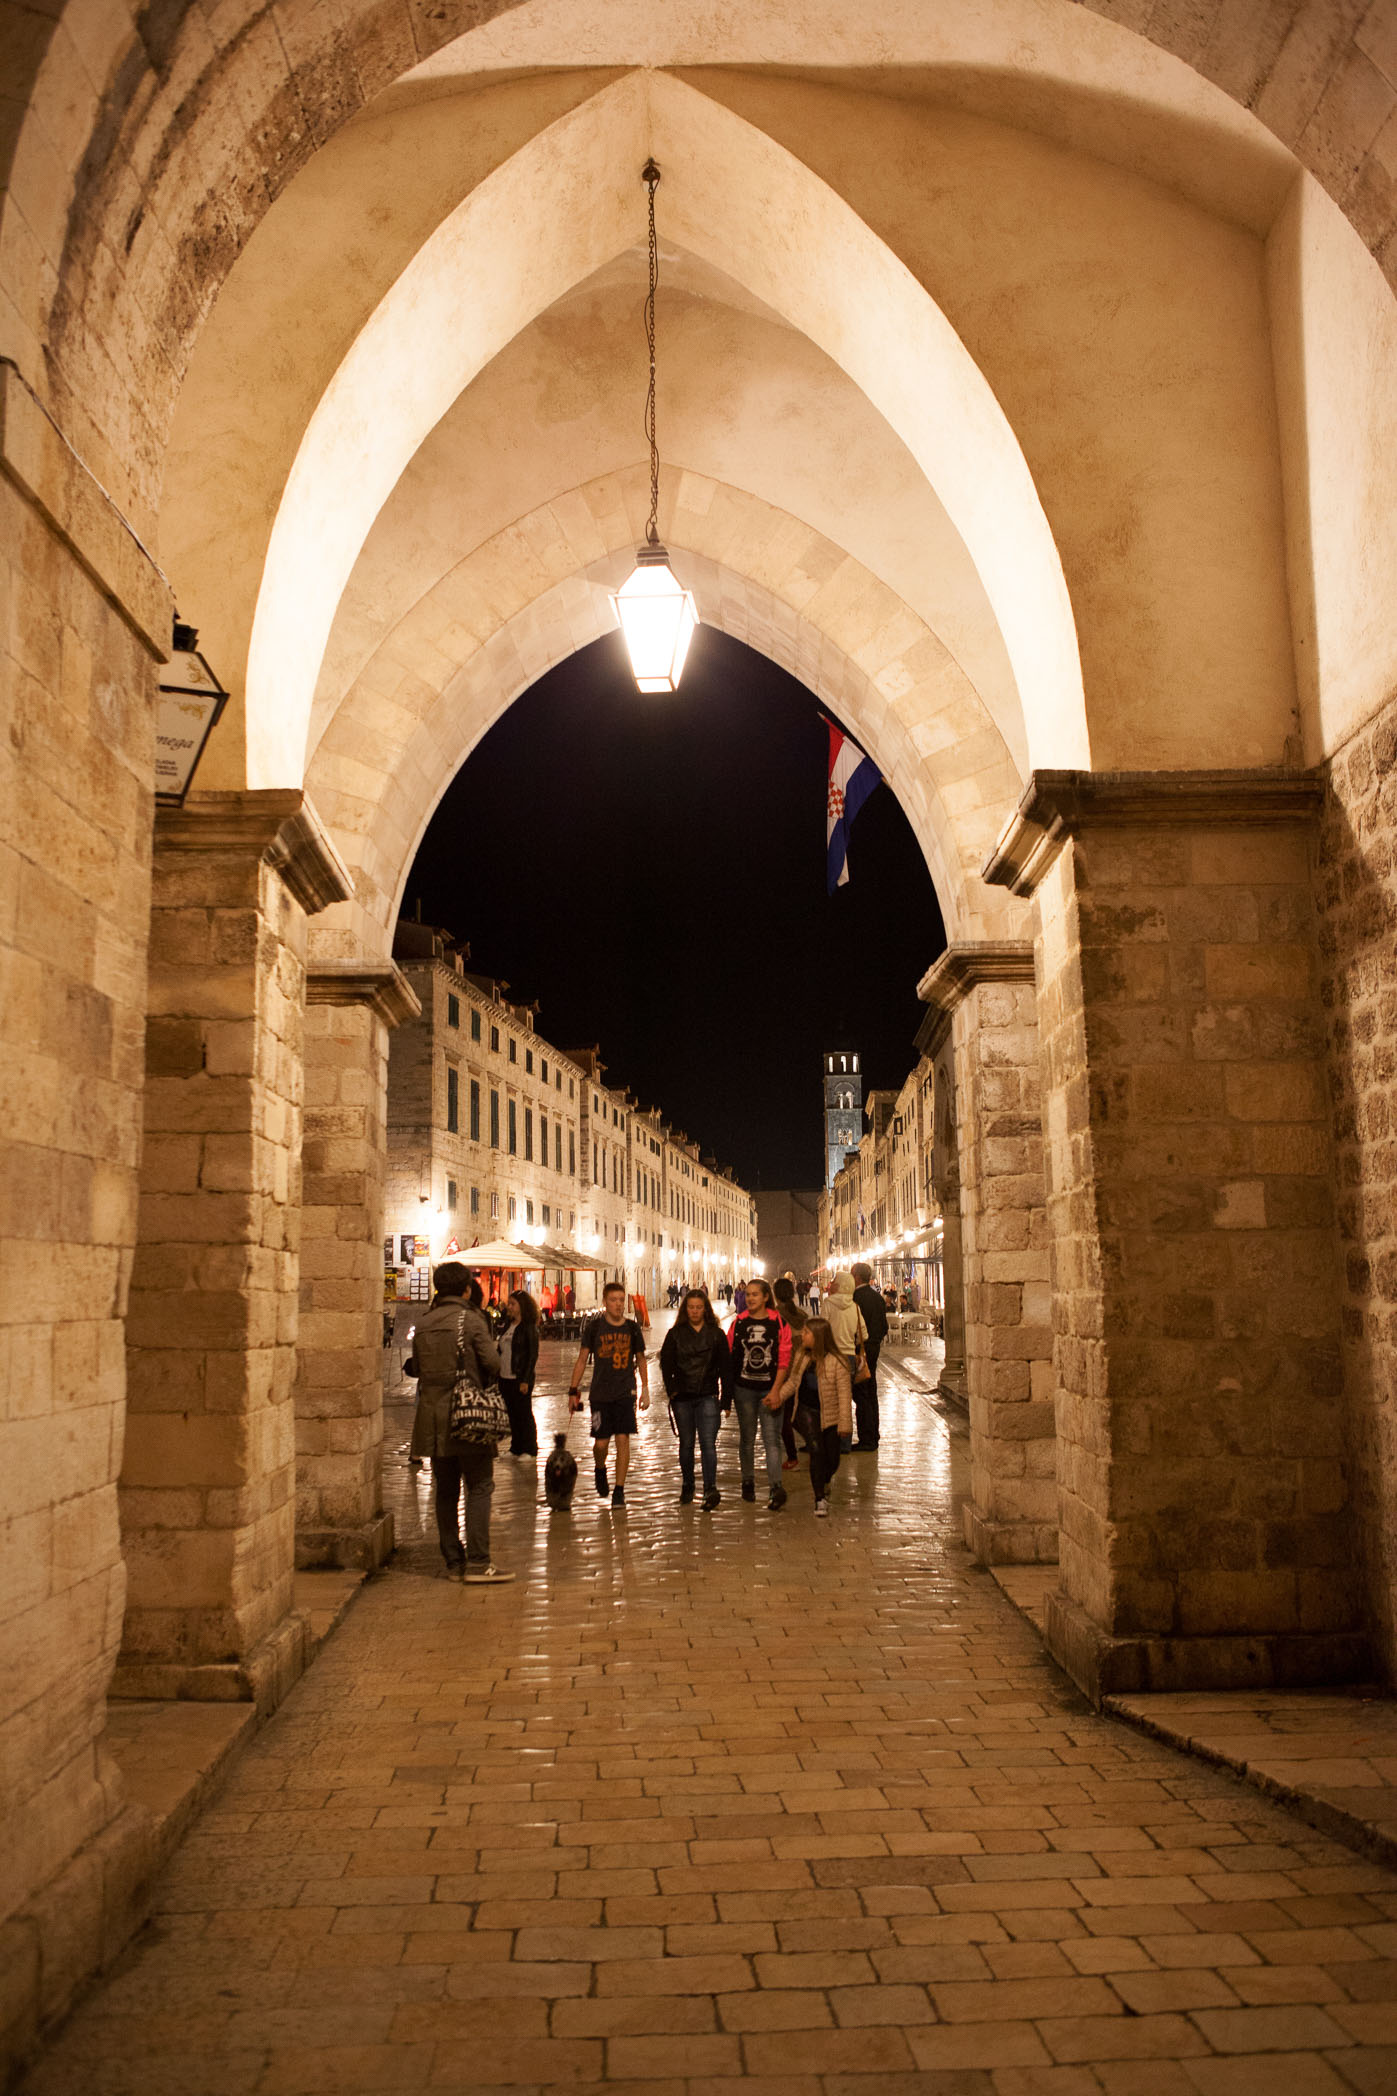 Stradun, which is the main street in Dubrovnik, at night